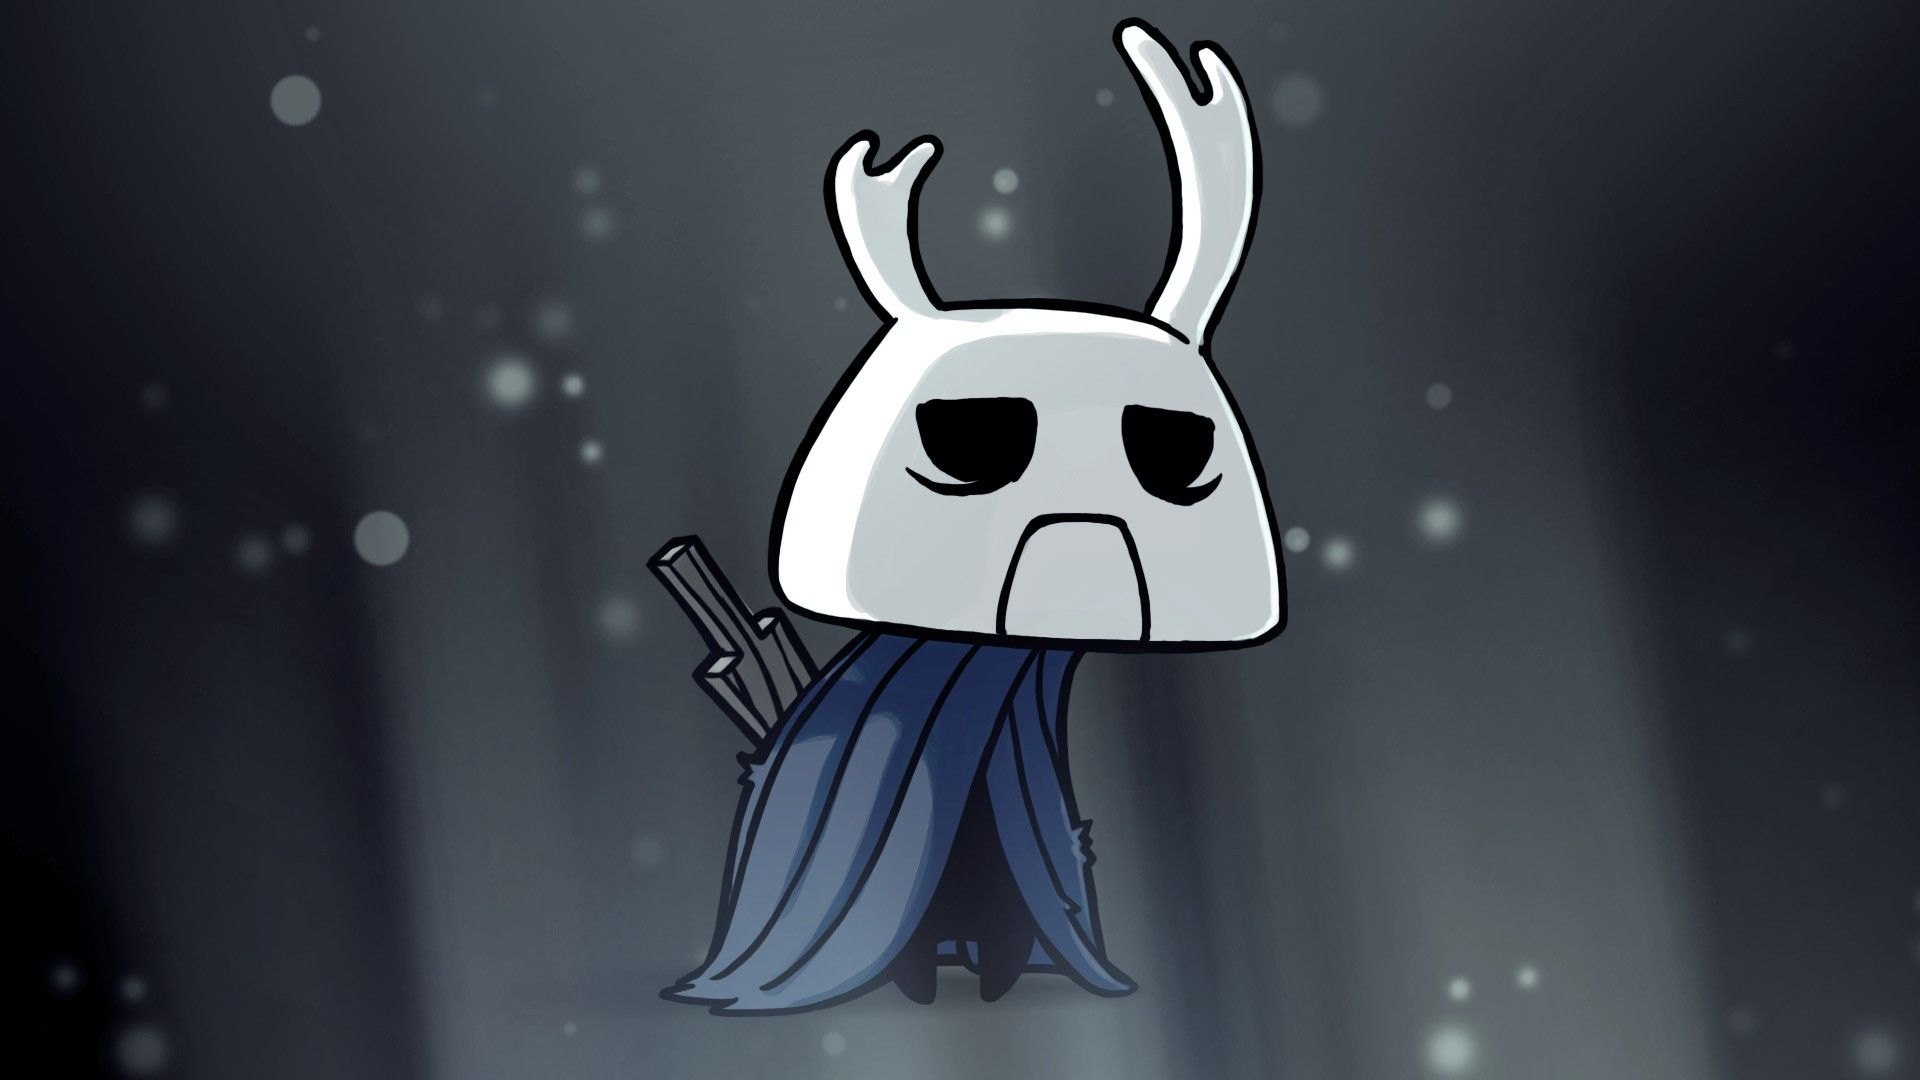 Hollow Knight Wallpaper 1920×1080